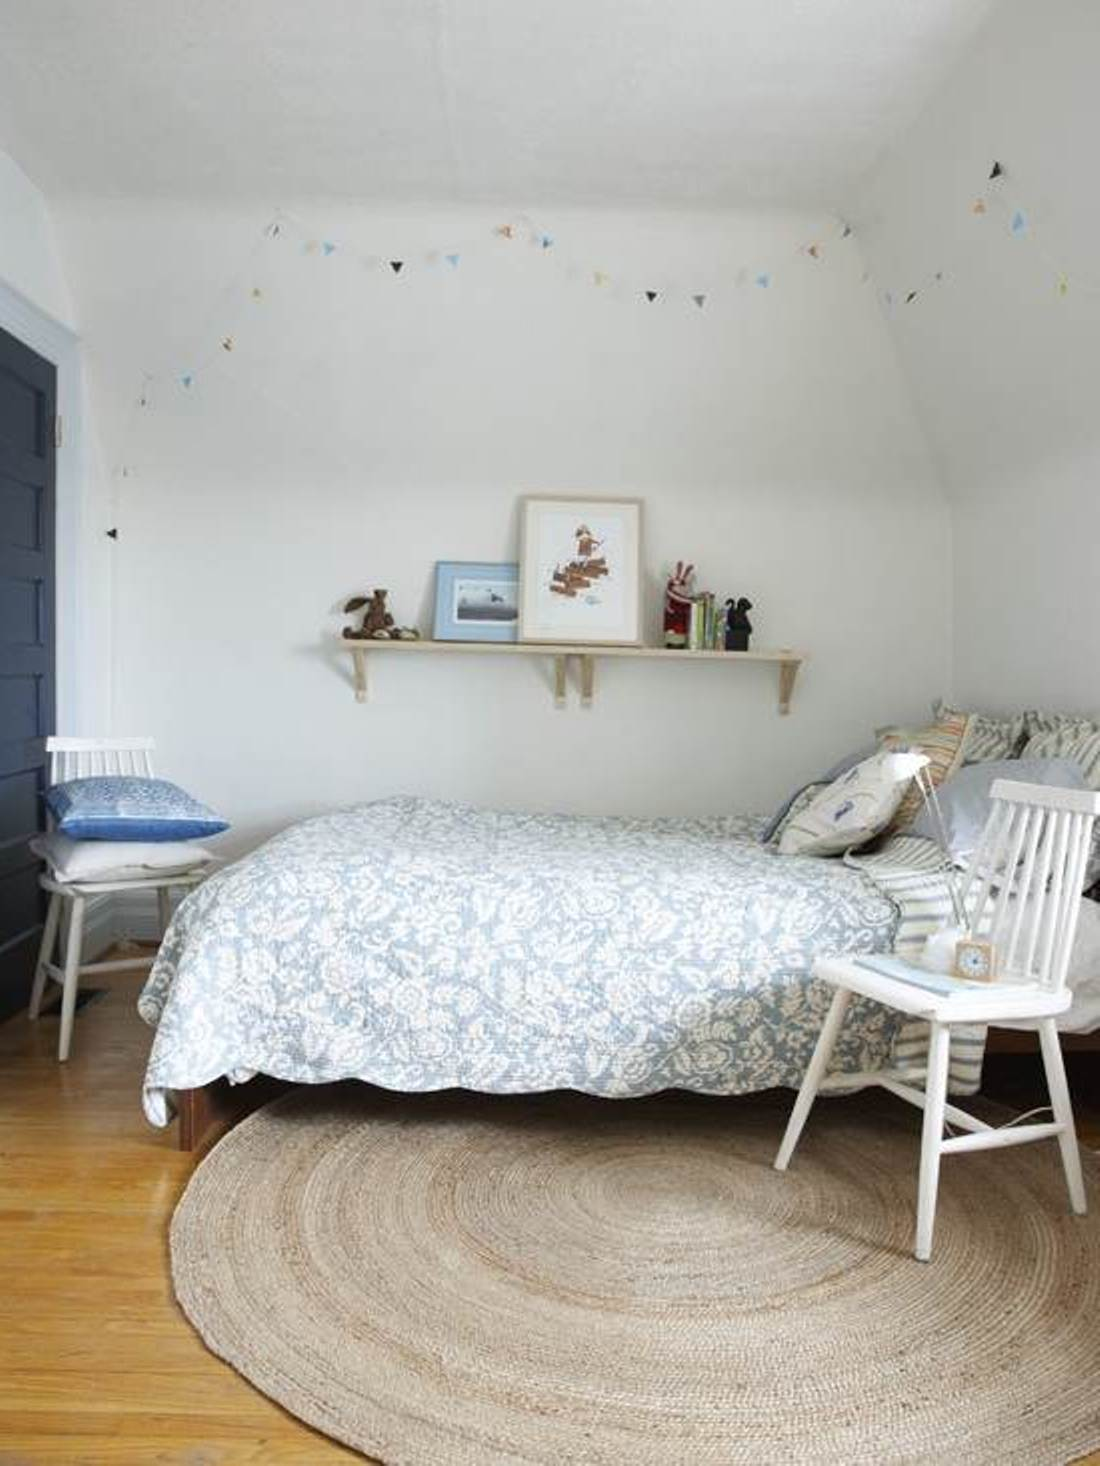 How To Decorate Your Bedroom On A Budget Ways To Decorate Your Bedroom